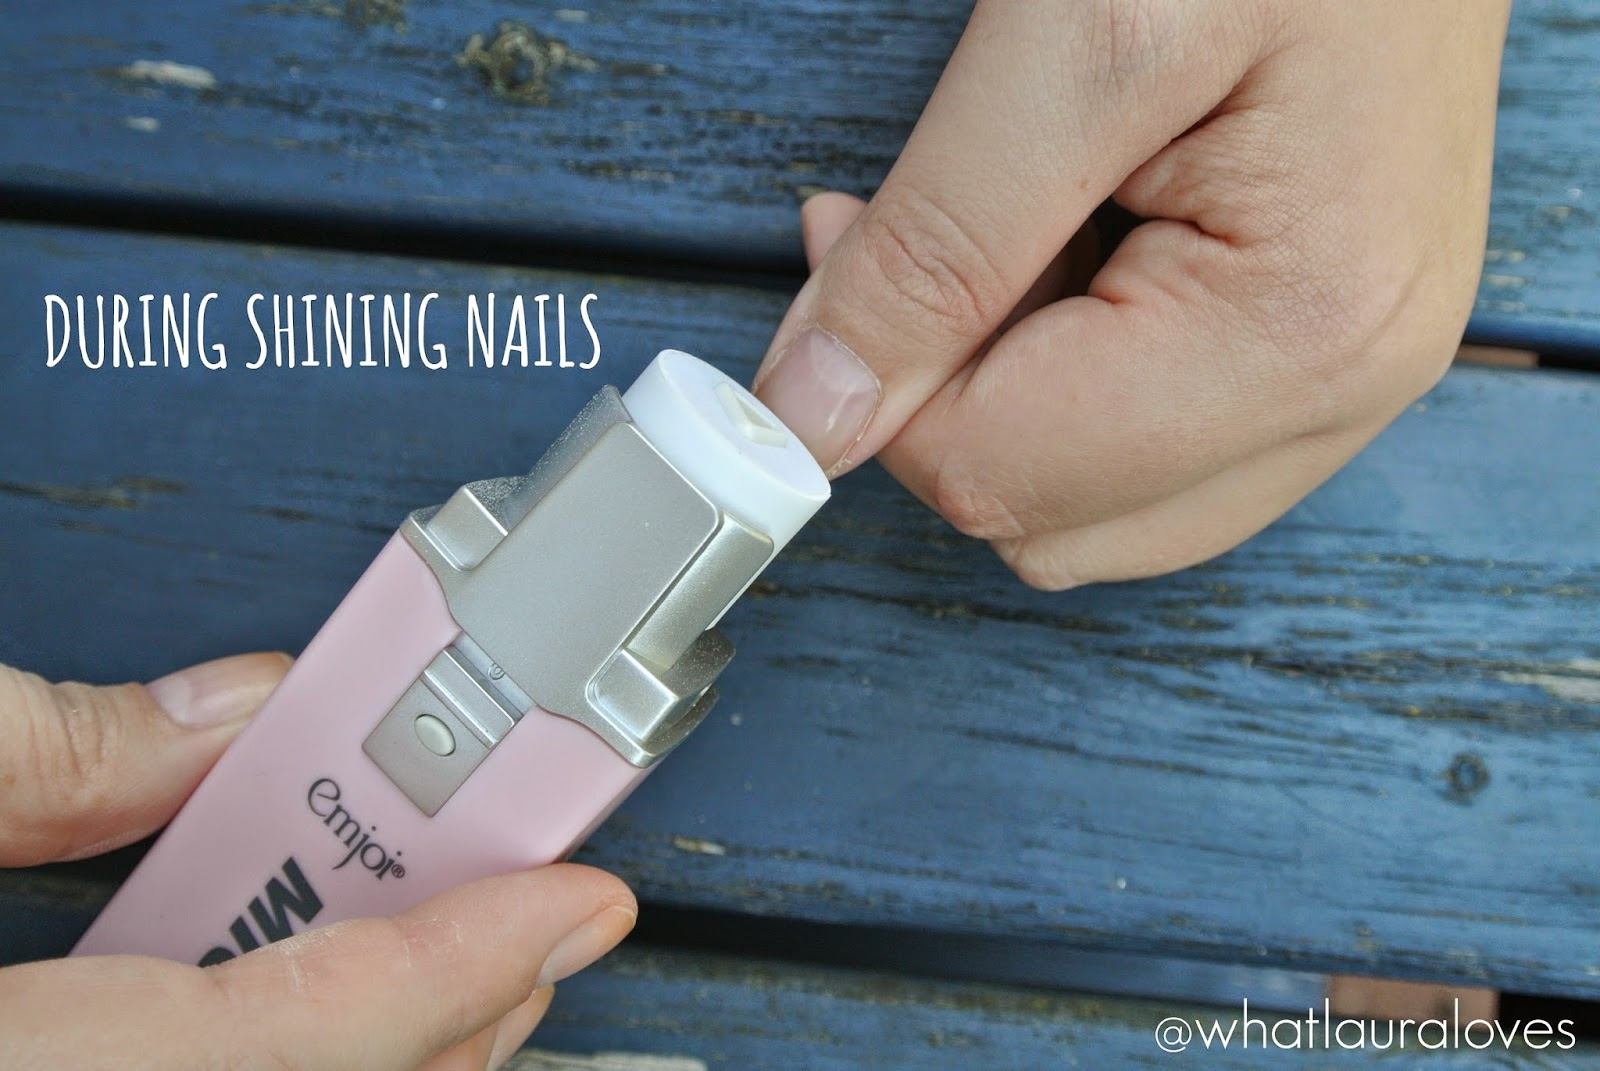 Emjoi MICRO Nail Electric Nail Polisher Review Image